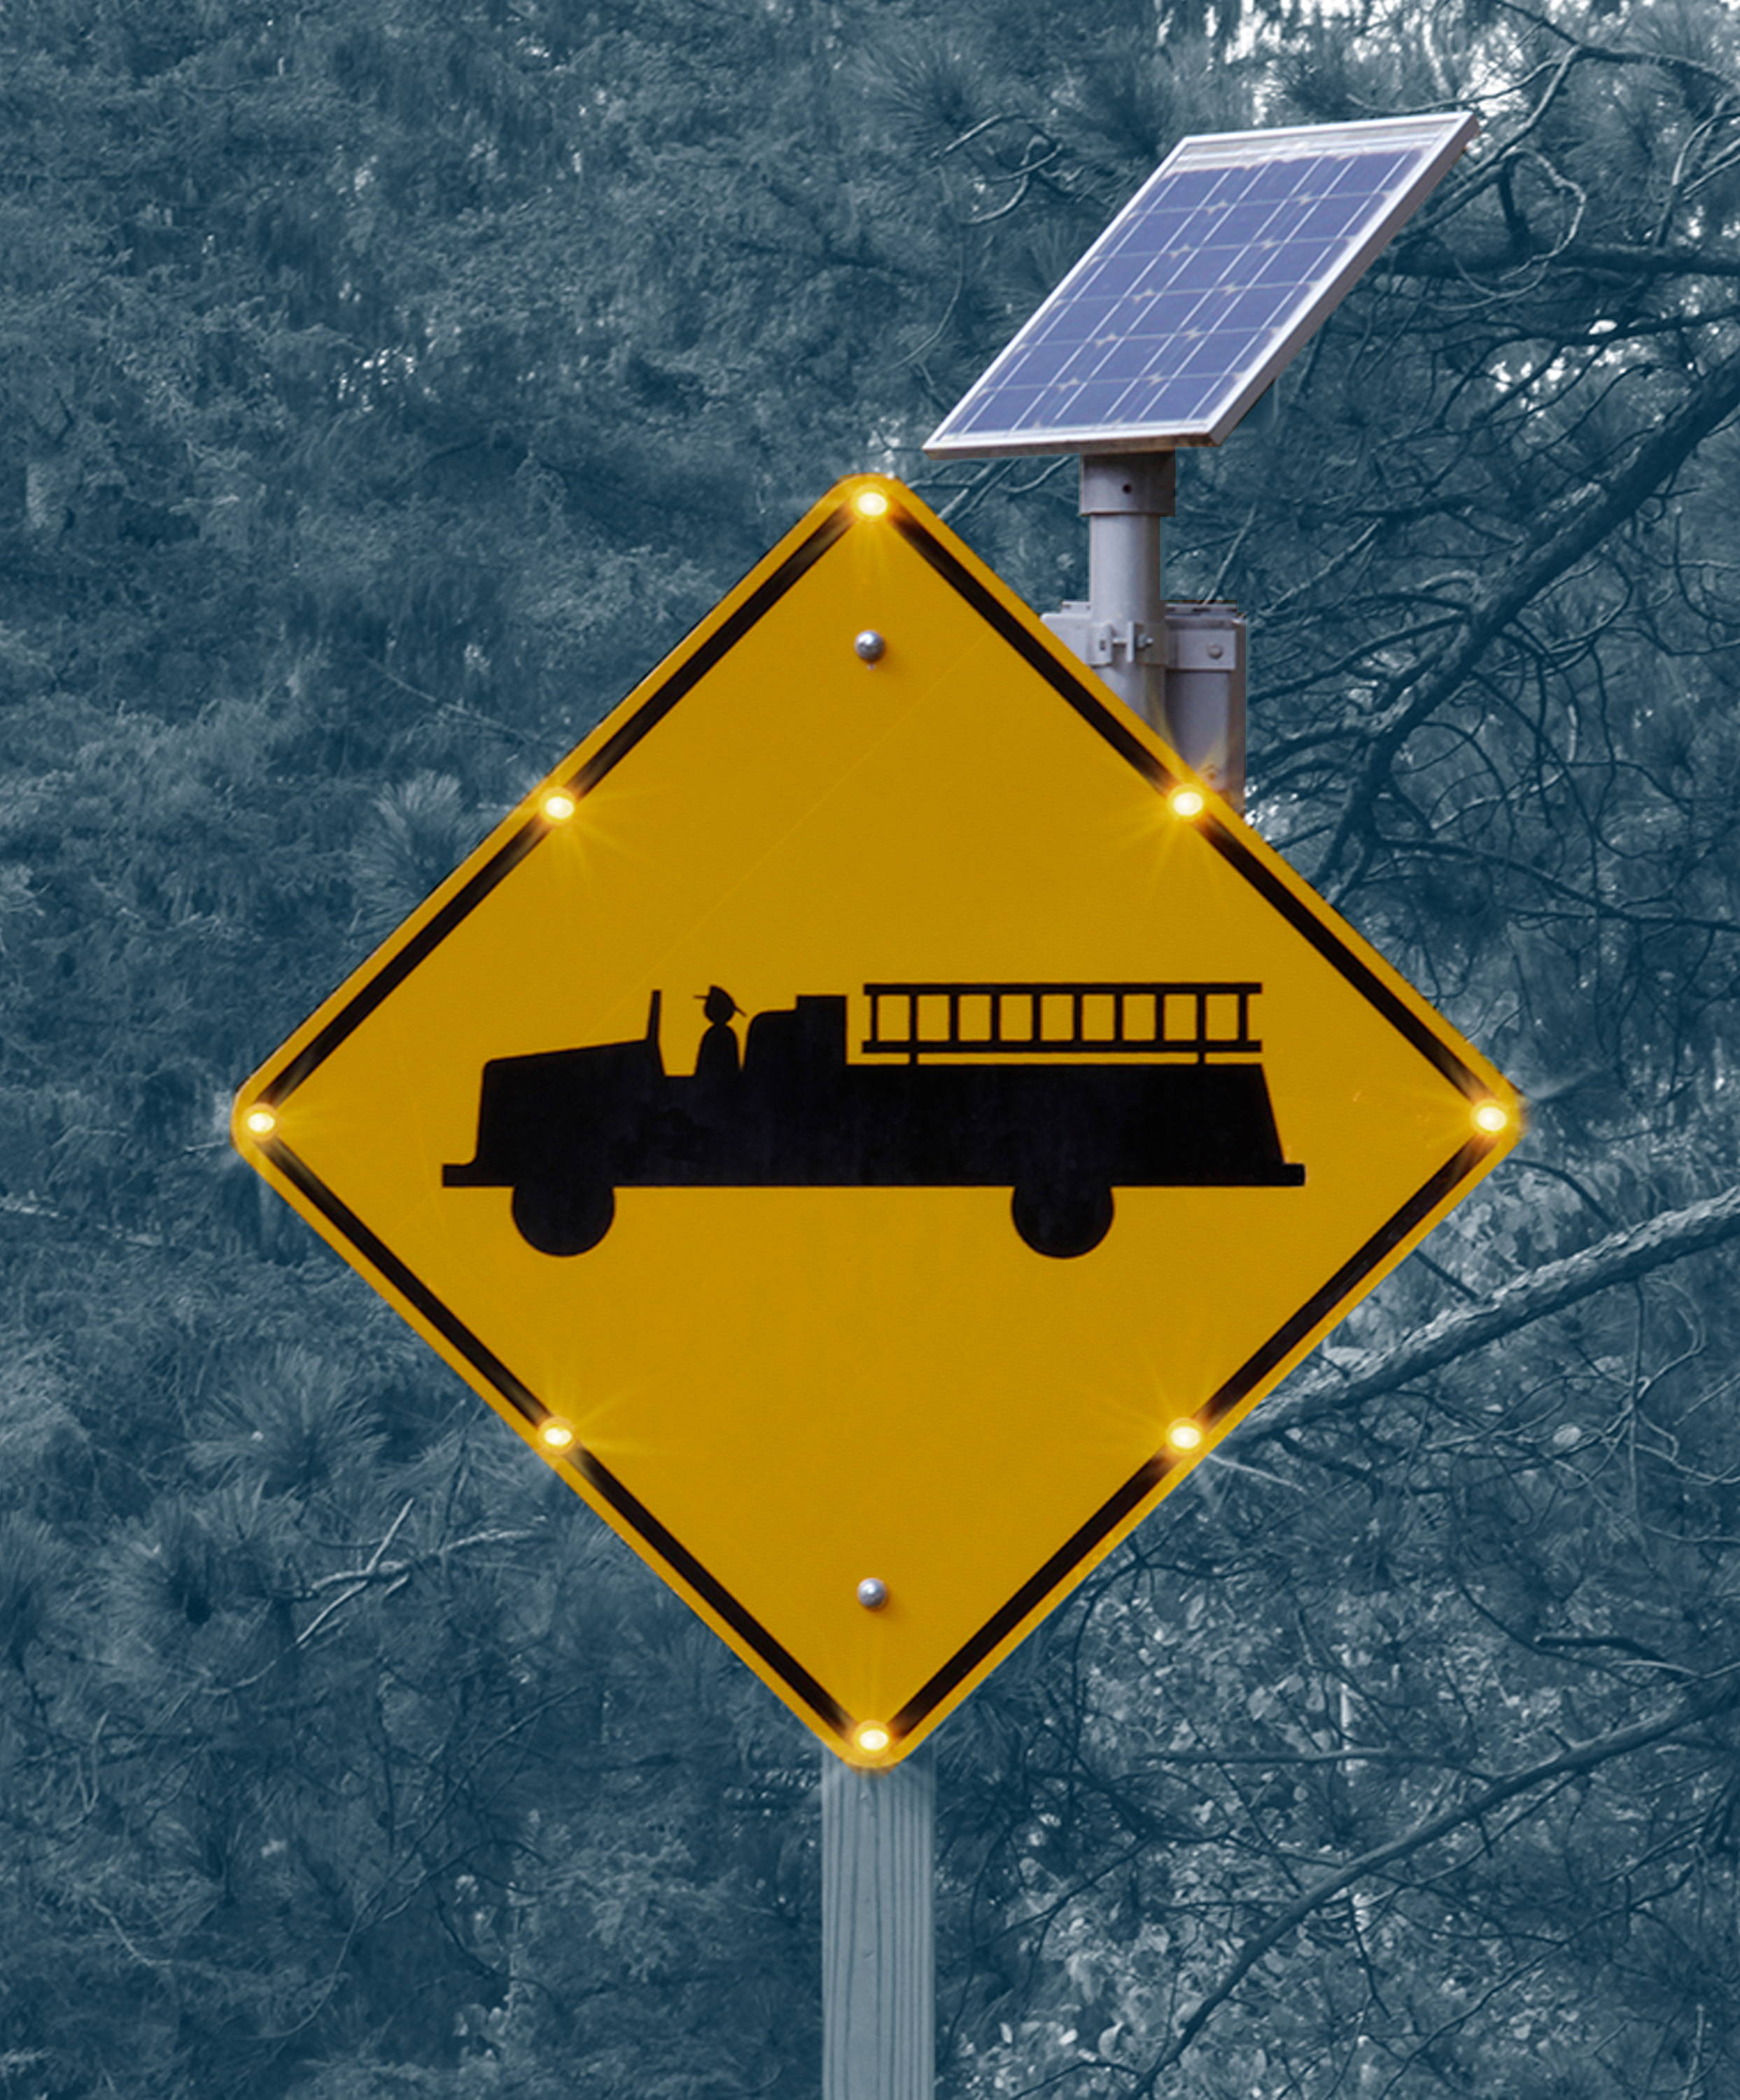 BlinkerSign-Flashing-LED-Sign-gives-advanced-warning-drivers-approaching-exit-and-entry-points